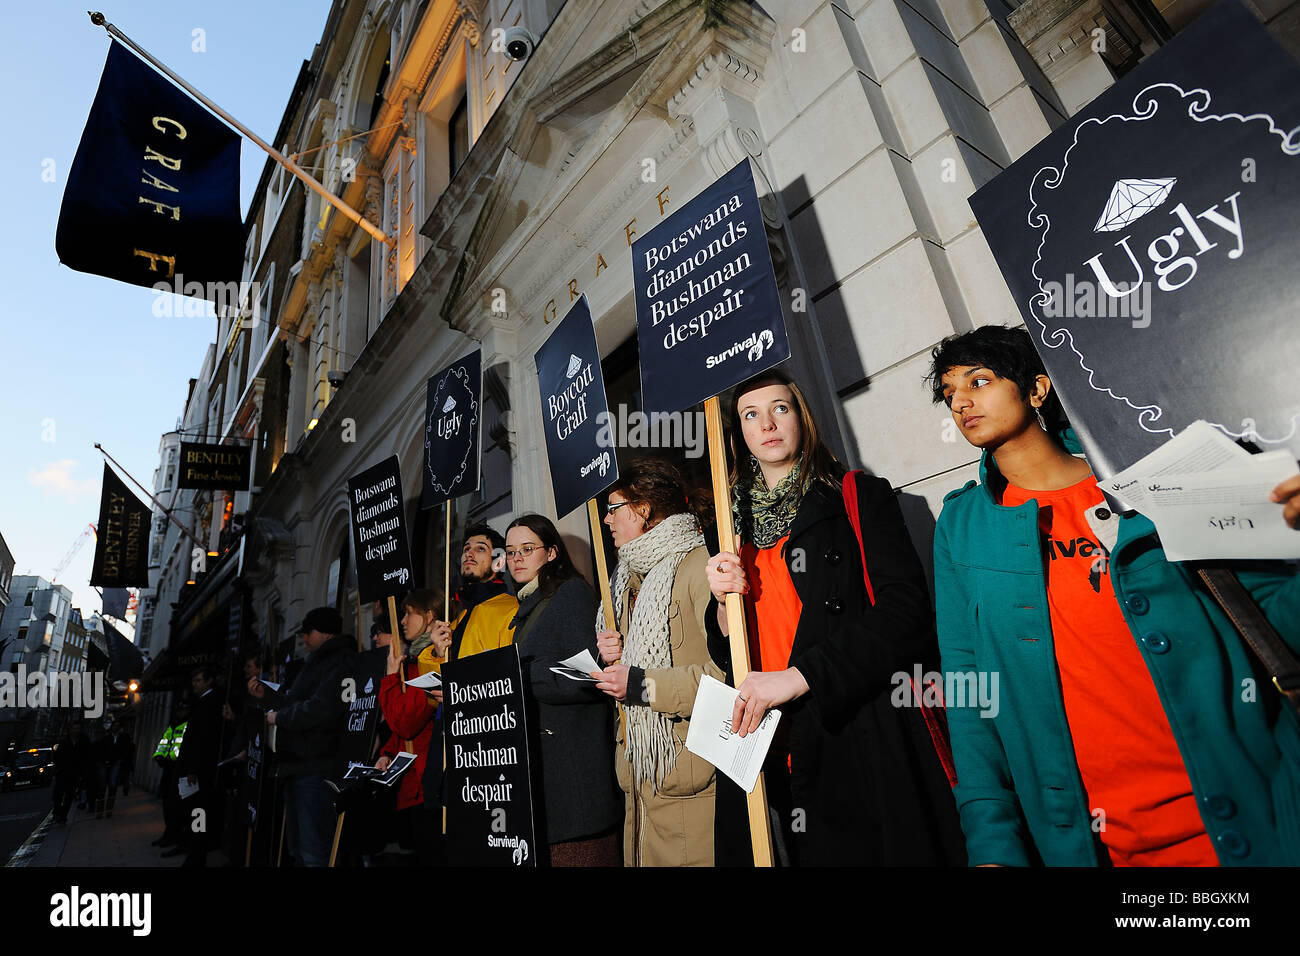 Survival International staging a protest outside the Graff shop in London's New Bond Street. Stock Photo